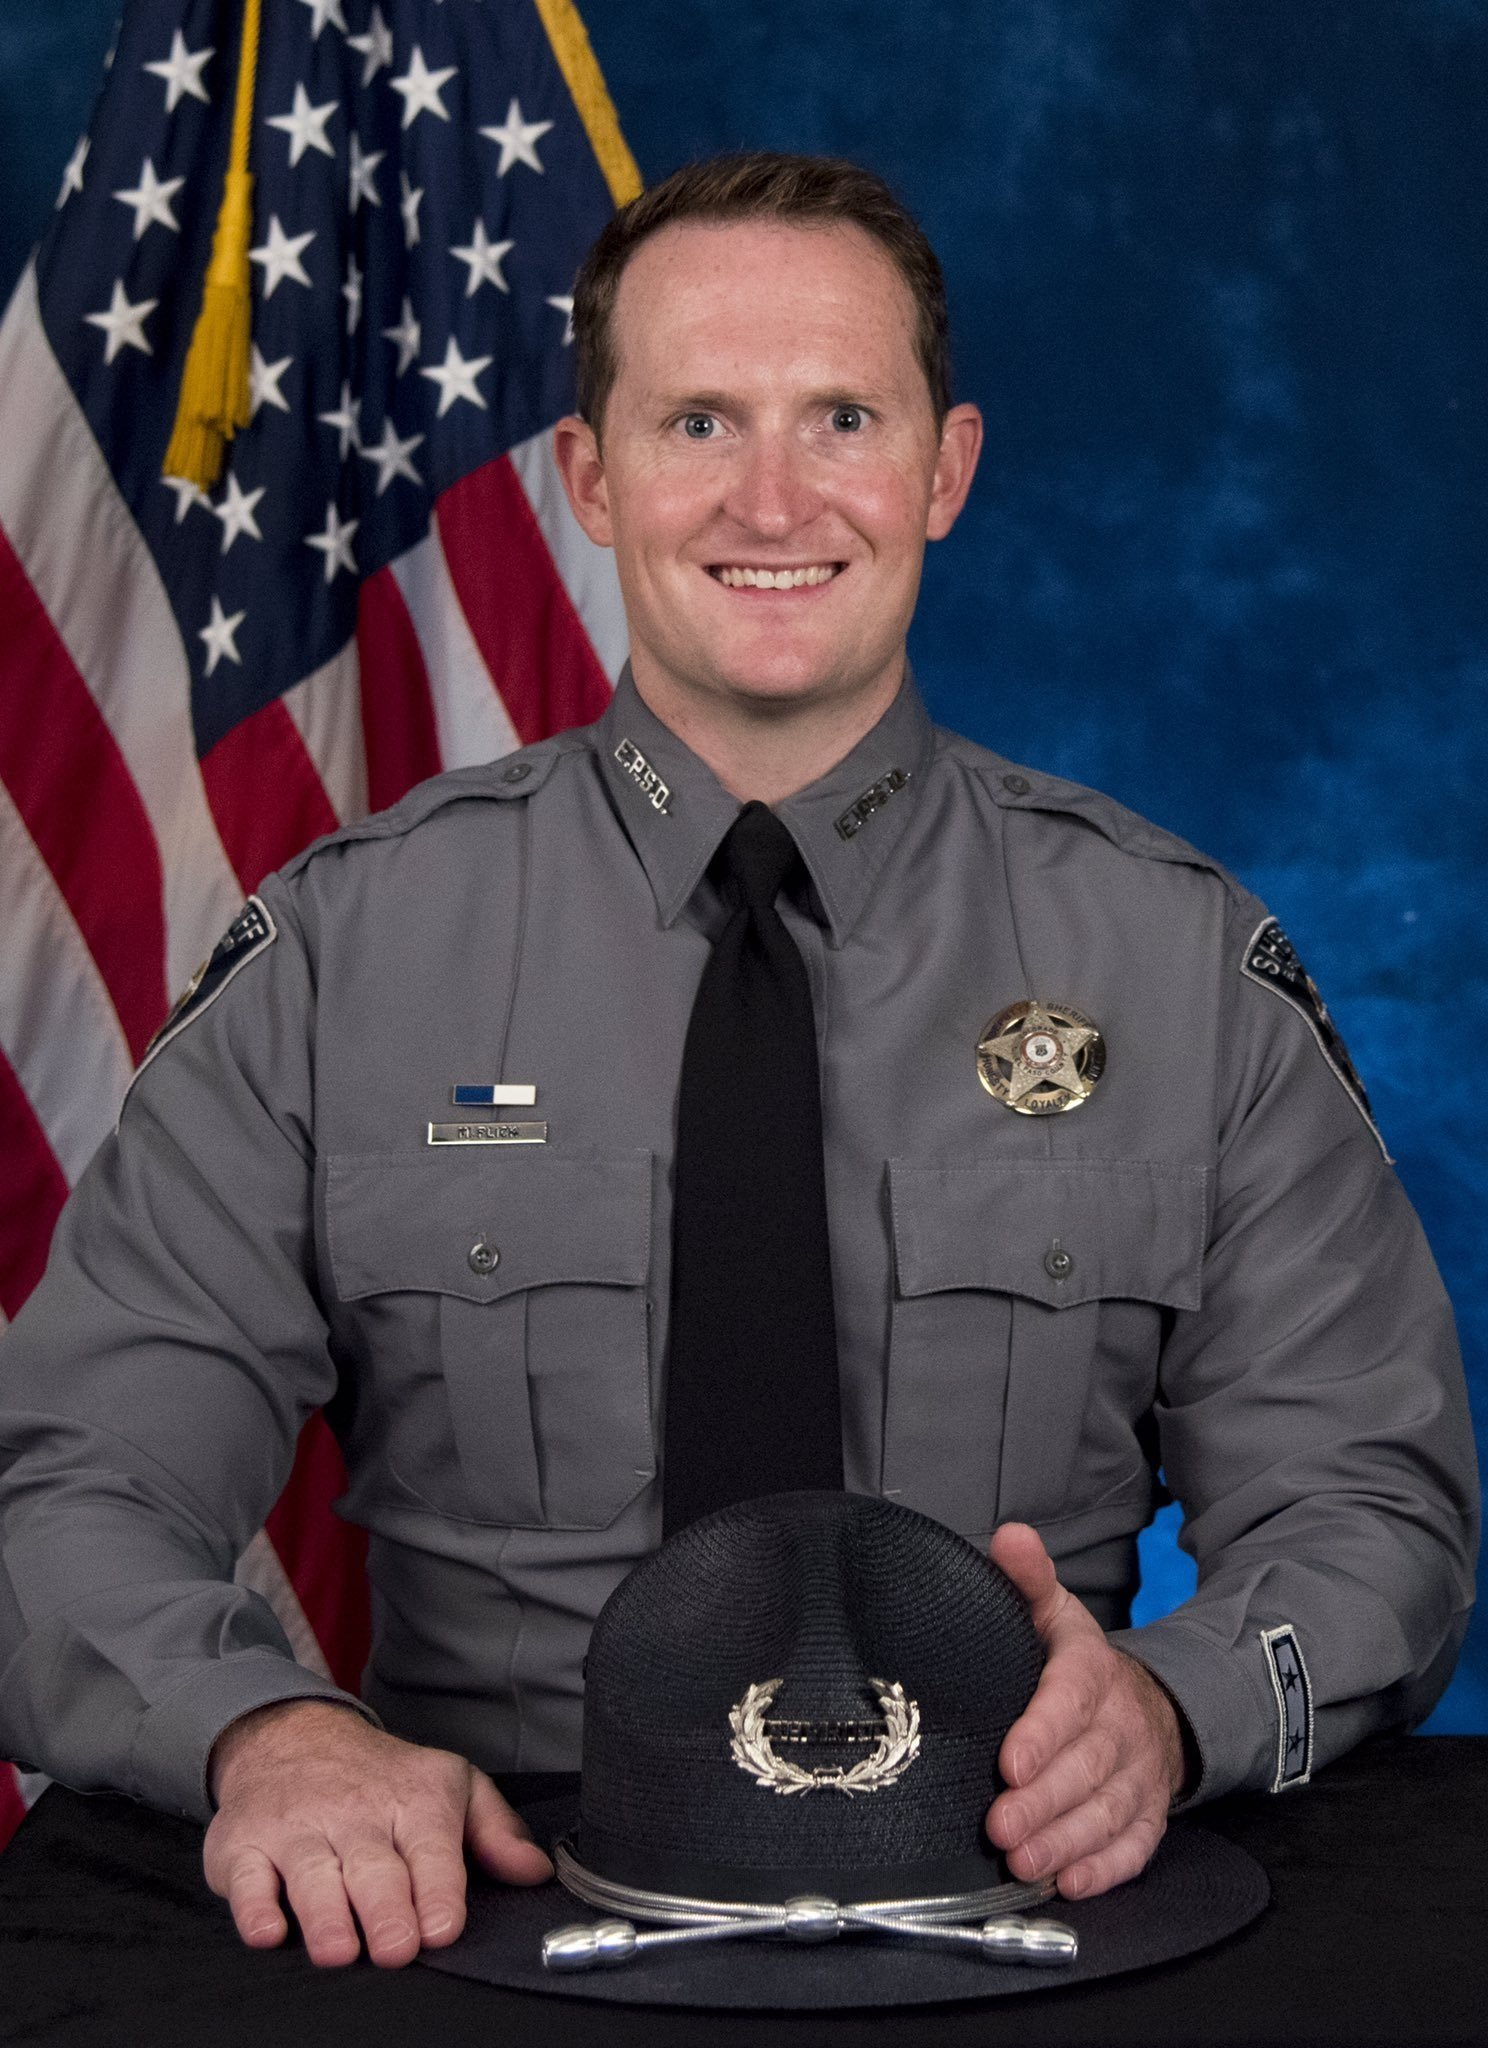 Deputy Micah Flick was shot and killed in the line of duty. He is survived by his wife and 7-year-old twins.